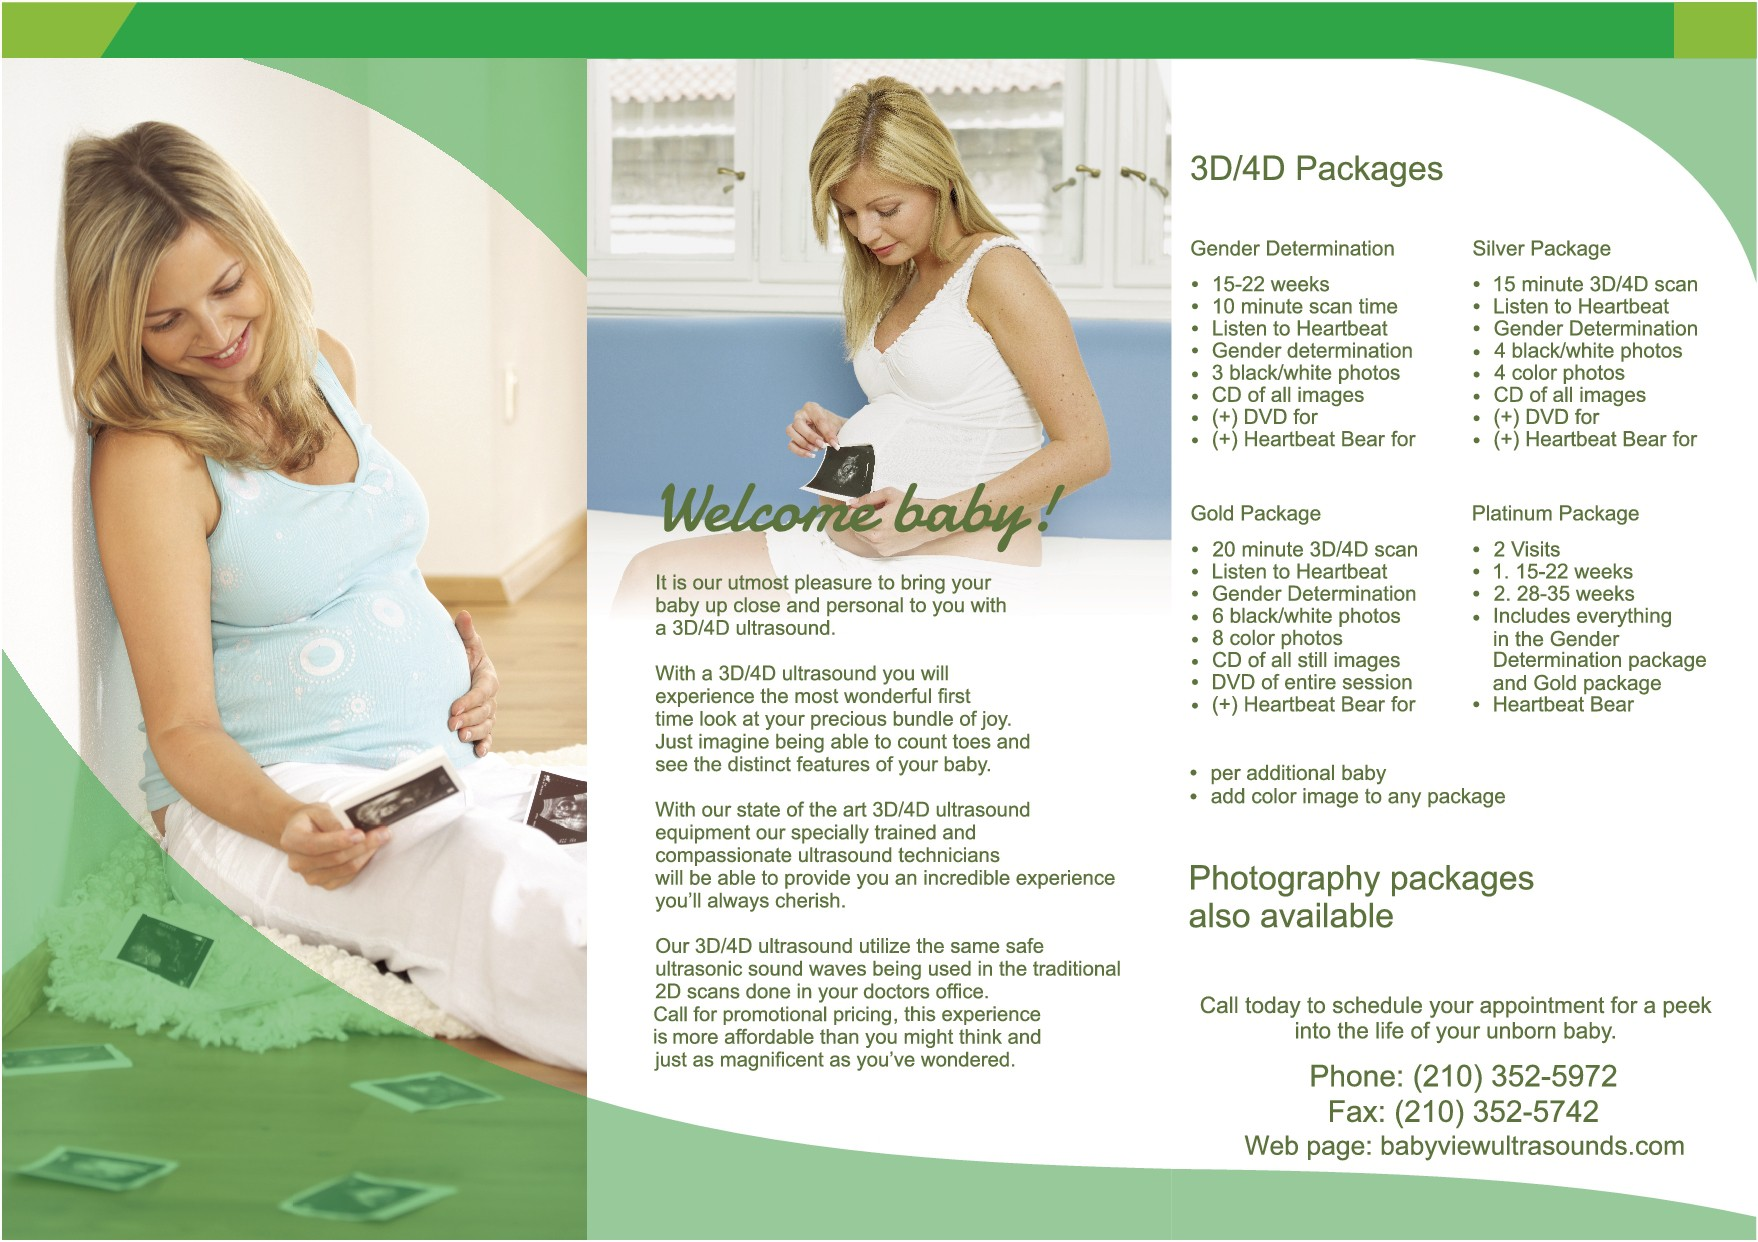 Baby view Business cards/brochures